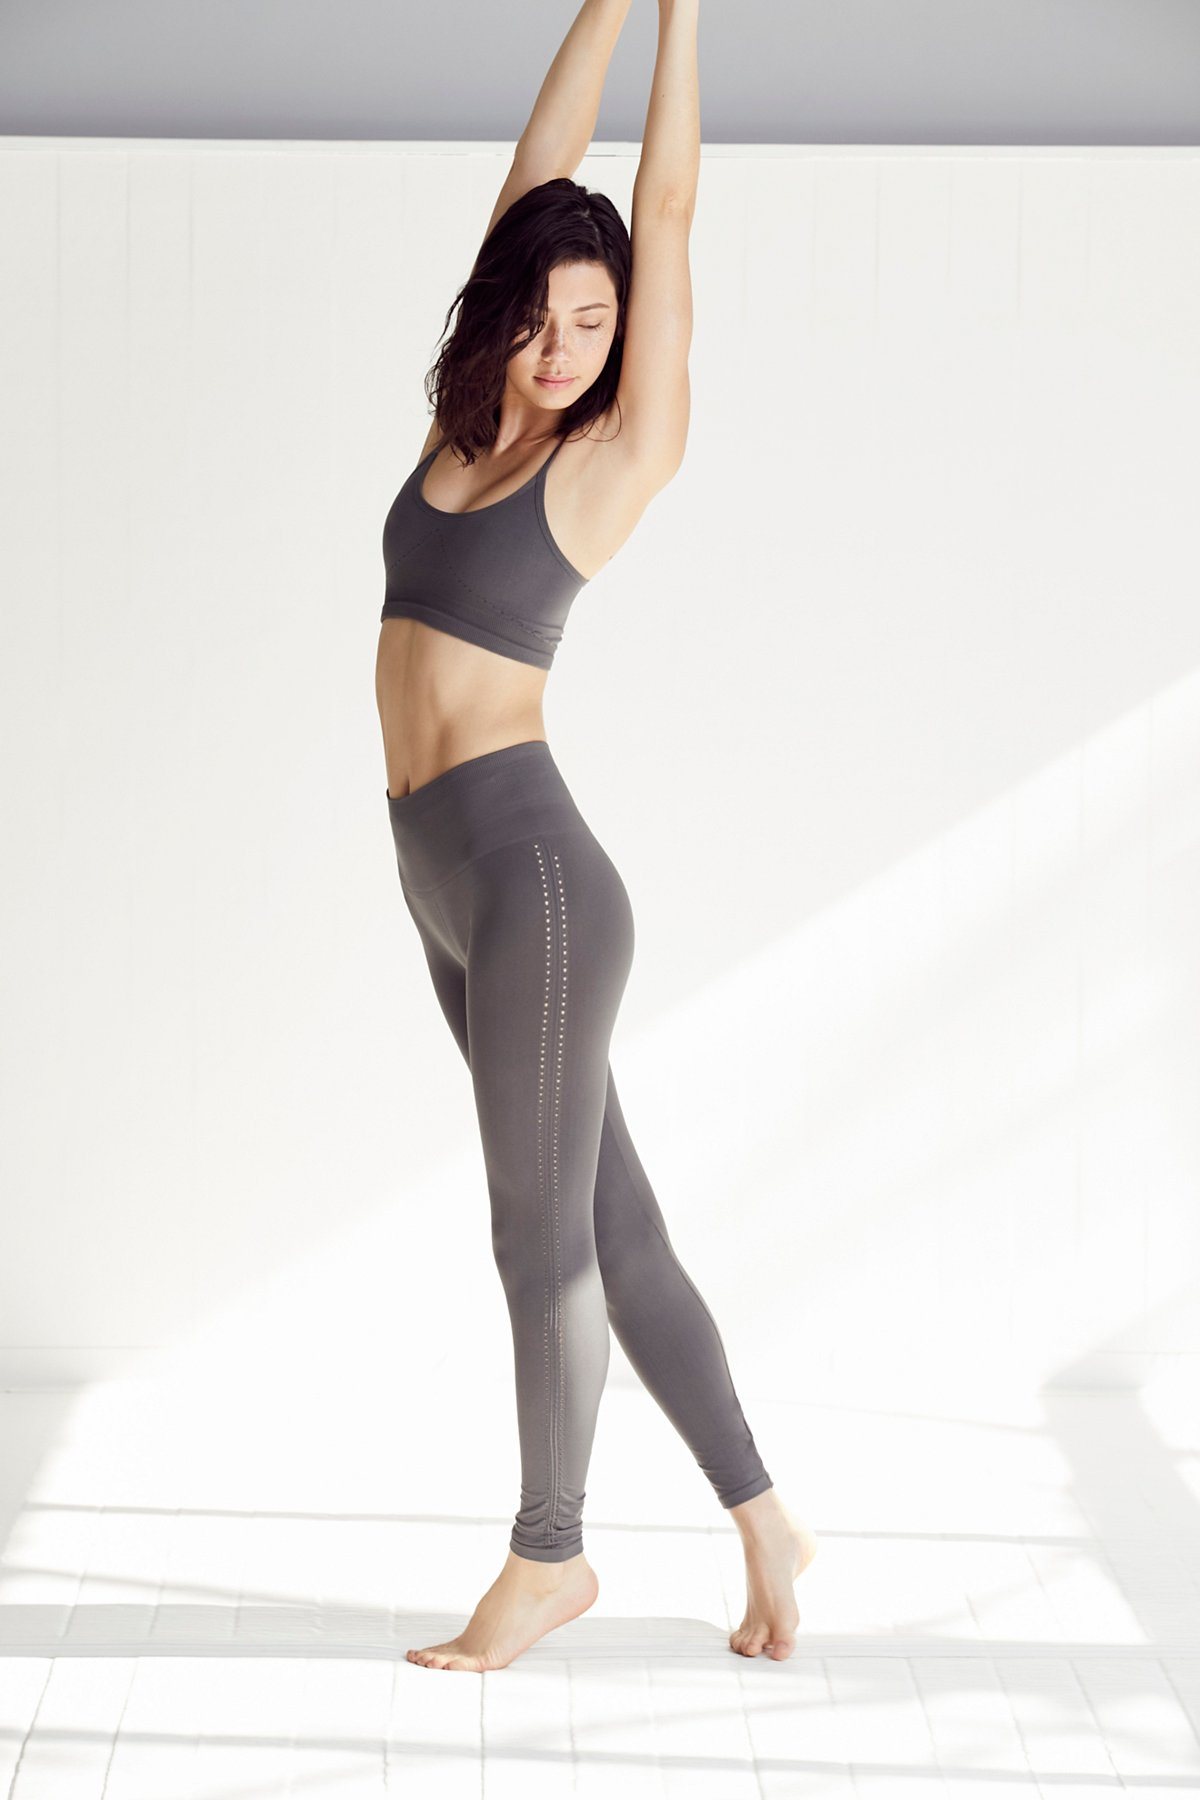 a0776eb9e6 Nwt Free People Movement Barely There Leggings Seamless Workout Pants Xs-L   68